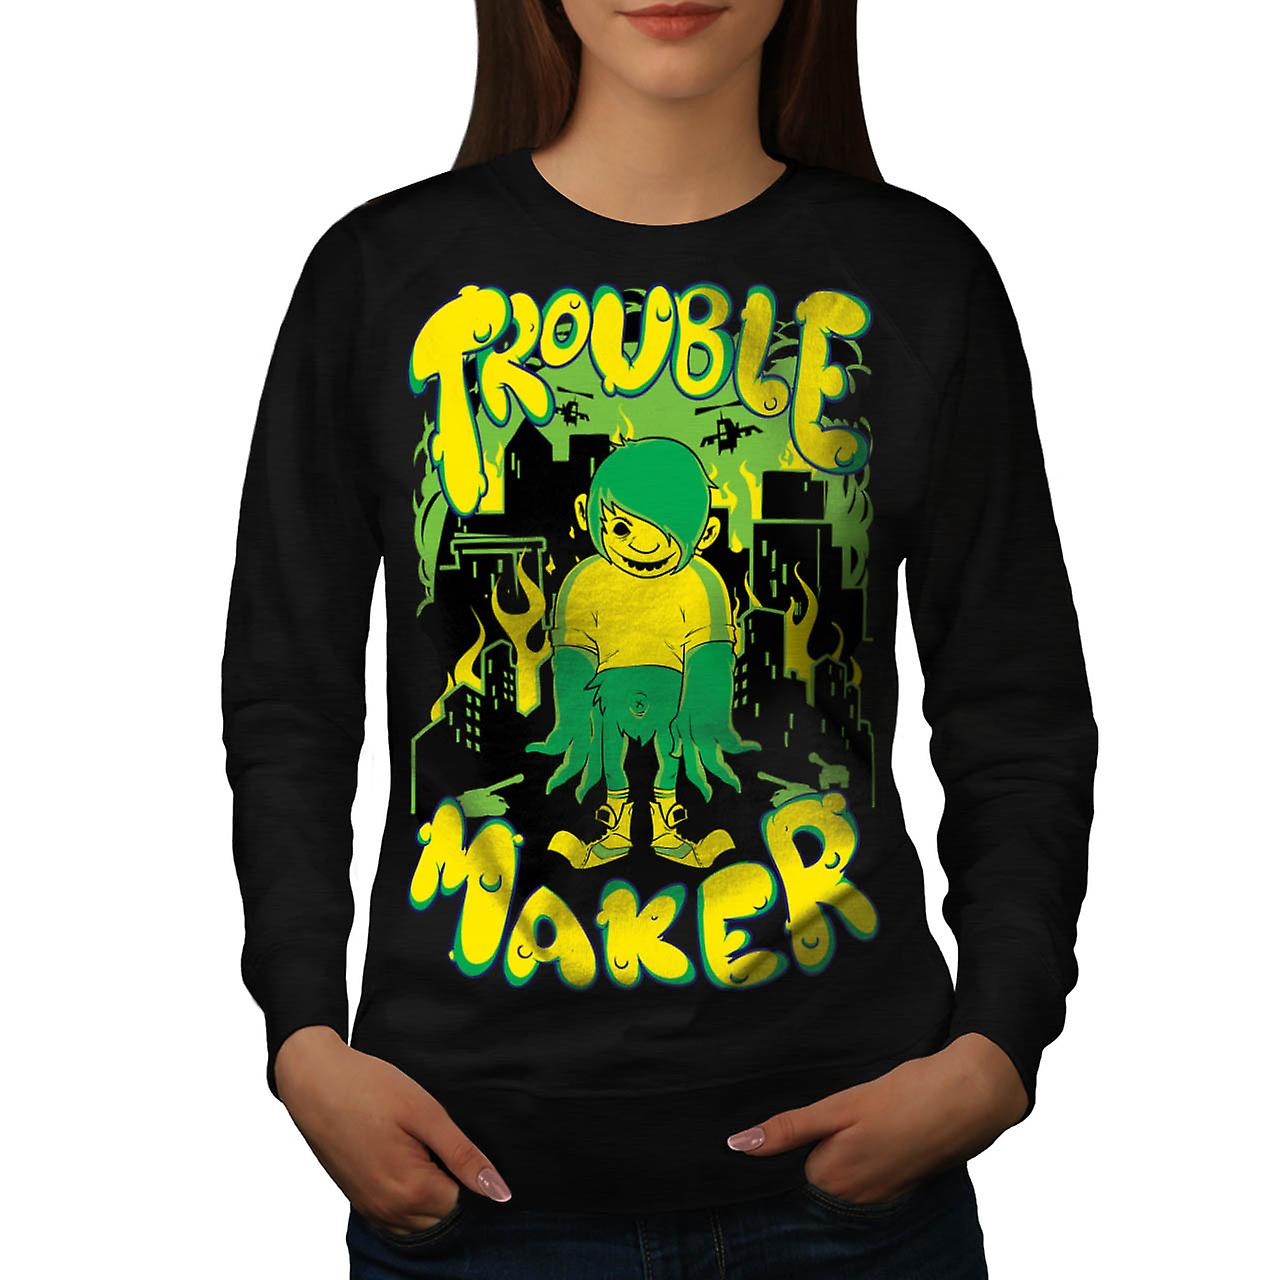 Trouble Maker Youth Chaos Problem Women Black Sweatshirt | Wellcoda